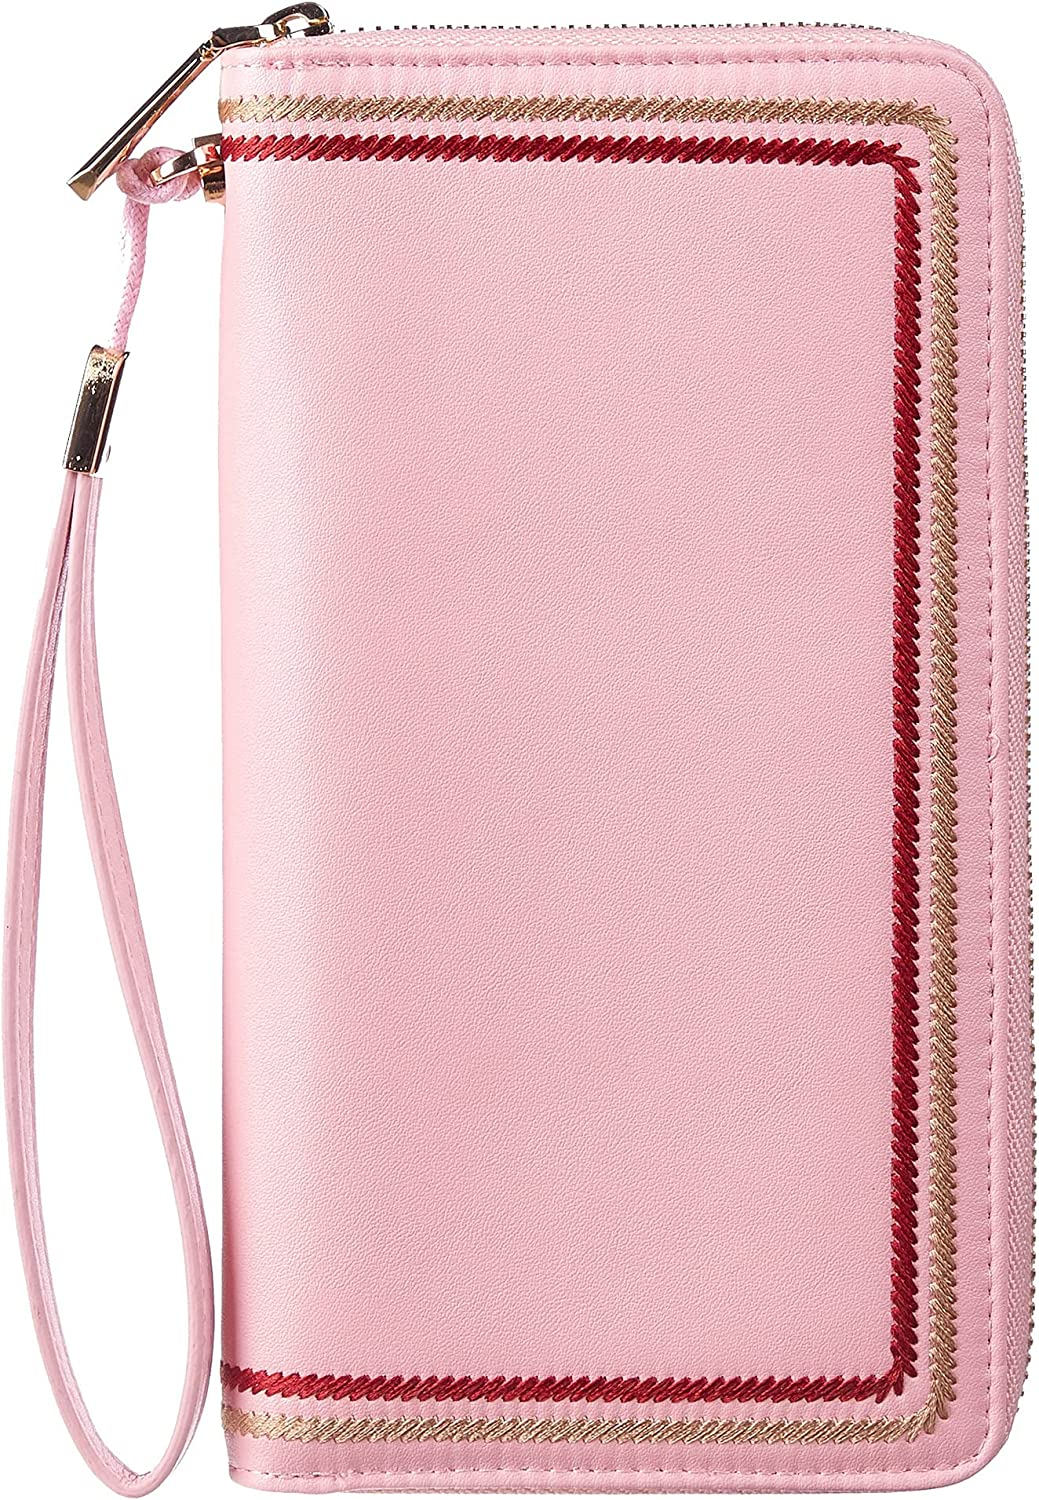 Gostwo Womens Large Capacity Wallet Genuine Leather RFID Blocking Purse Credit Card Zip Around Clutch Wristlet(Pink without logo)